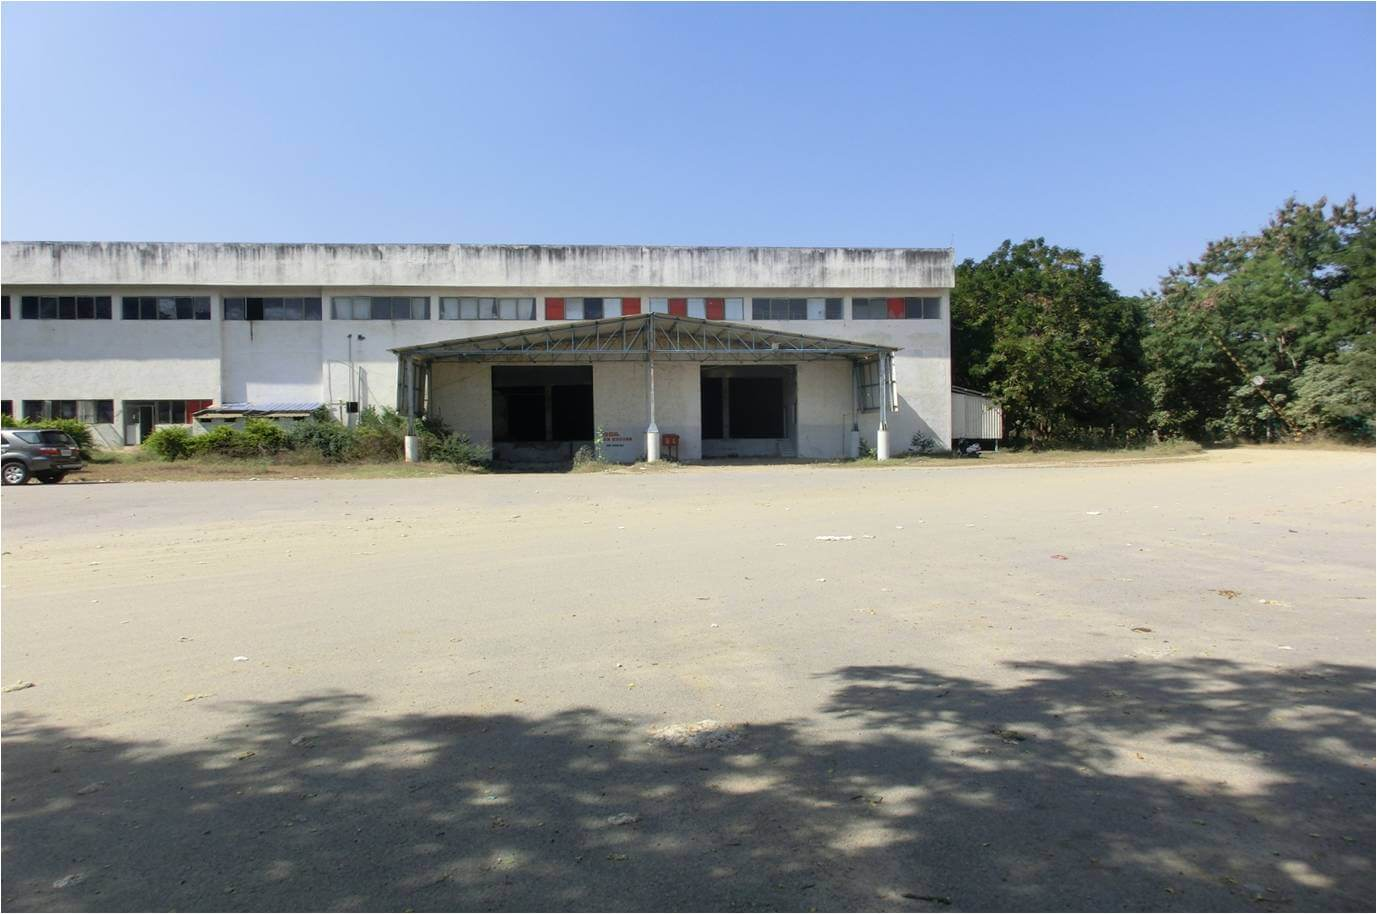 Warehouse Facility of more than 8,00,000 Sq. Feet at Sanghi Nagar